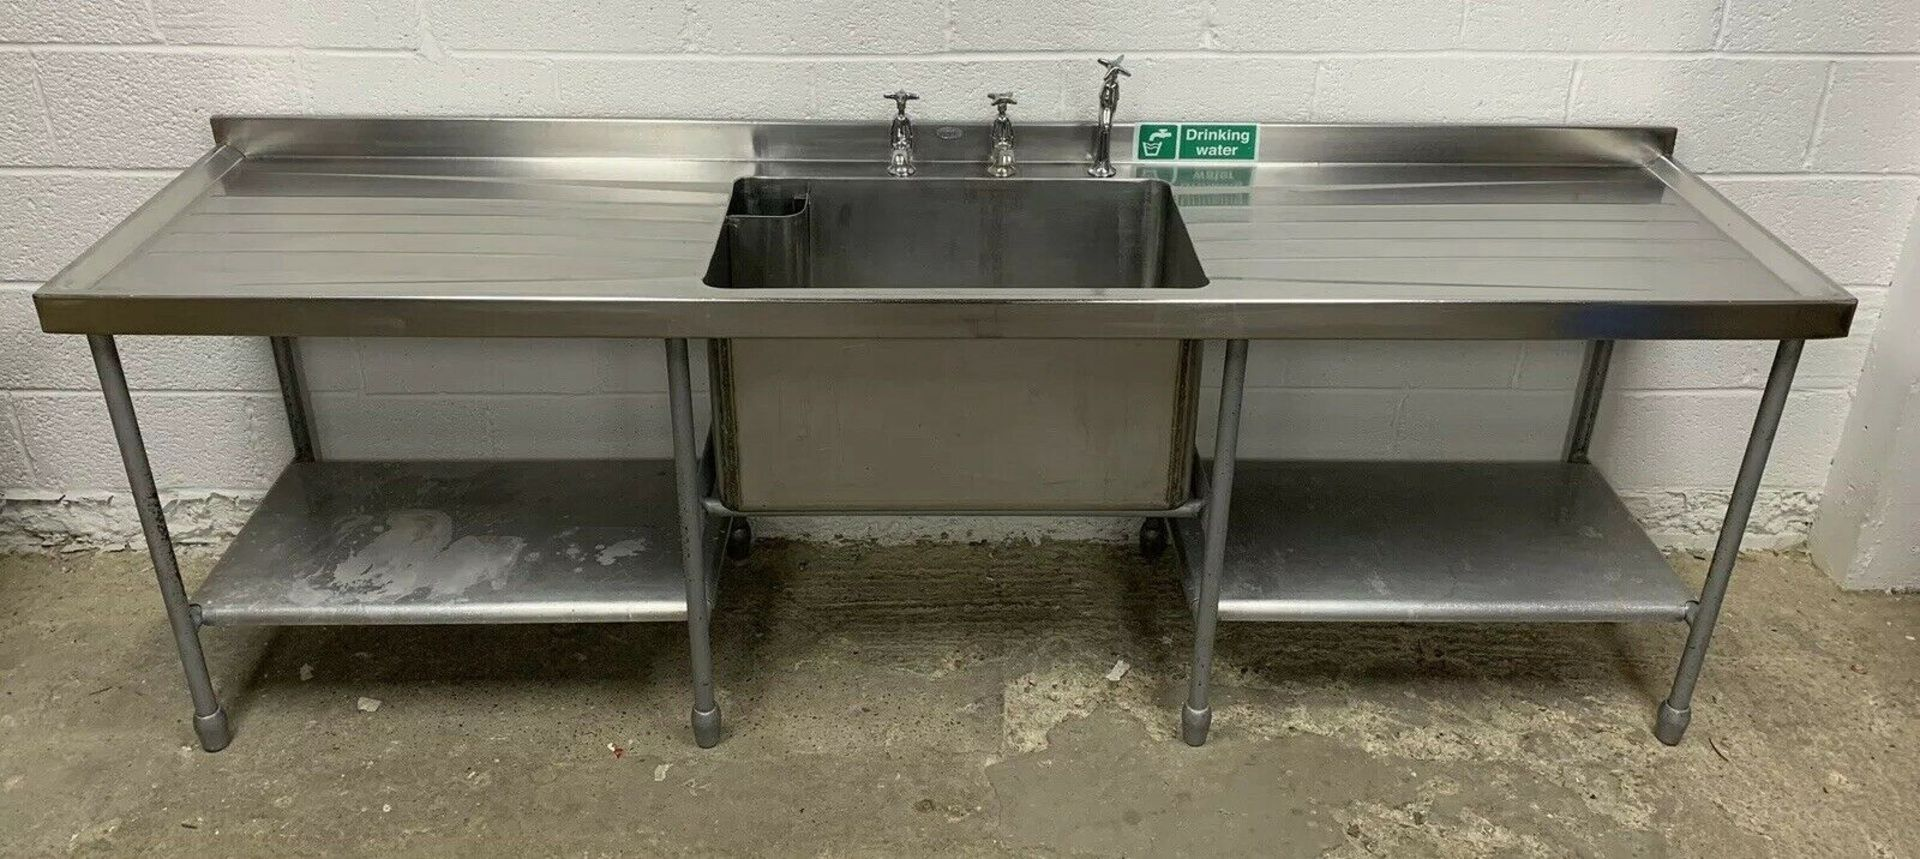 Lot 53 - Stainless Steel Deep Single Bowl Sink with Double Drainer and Upstand